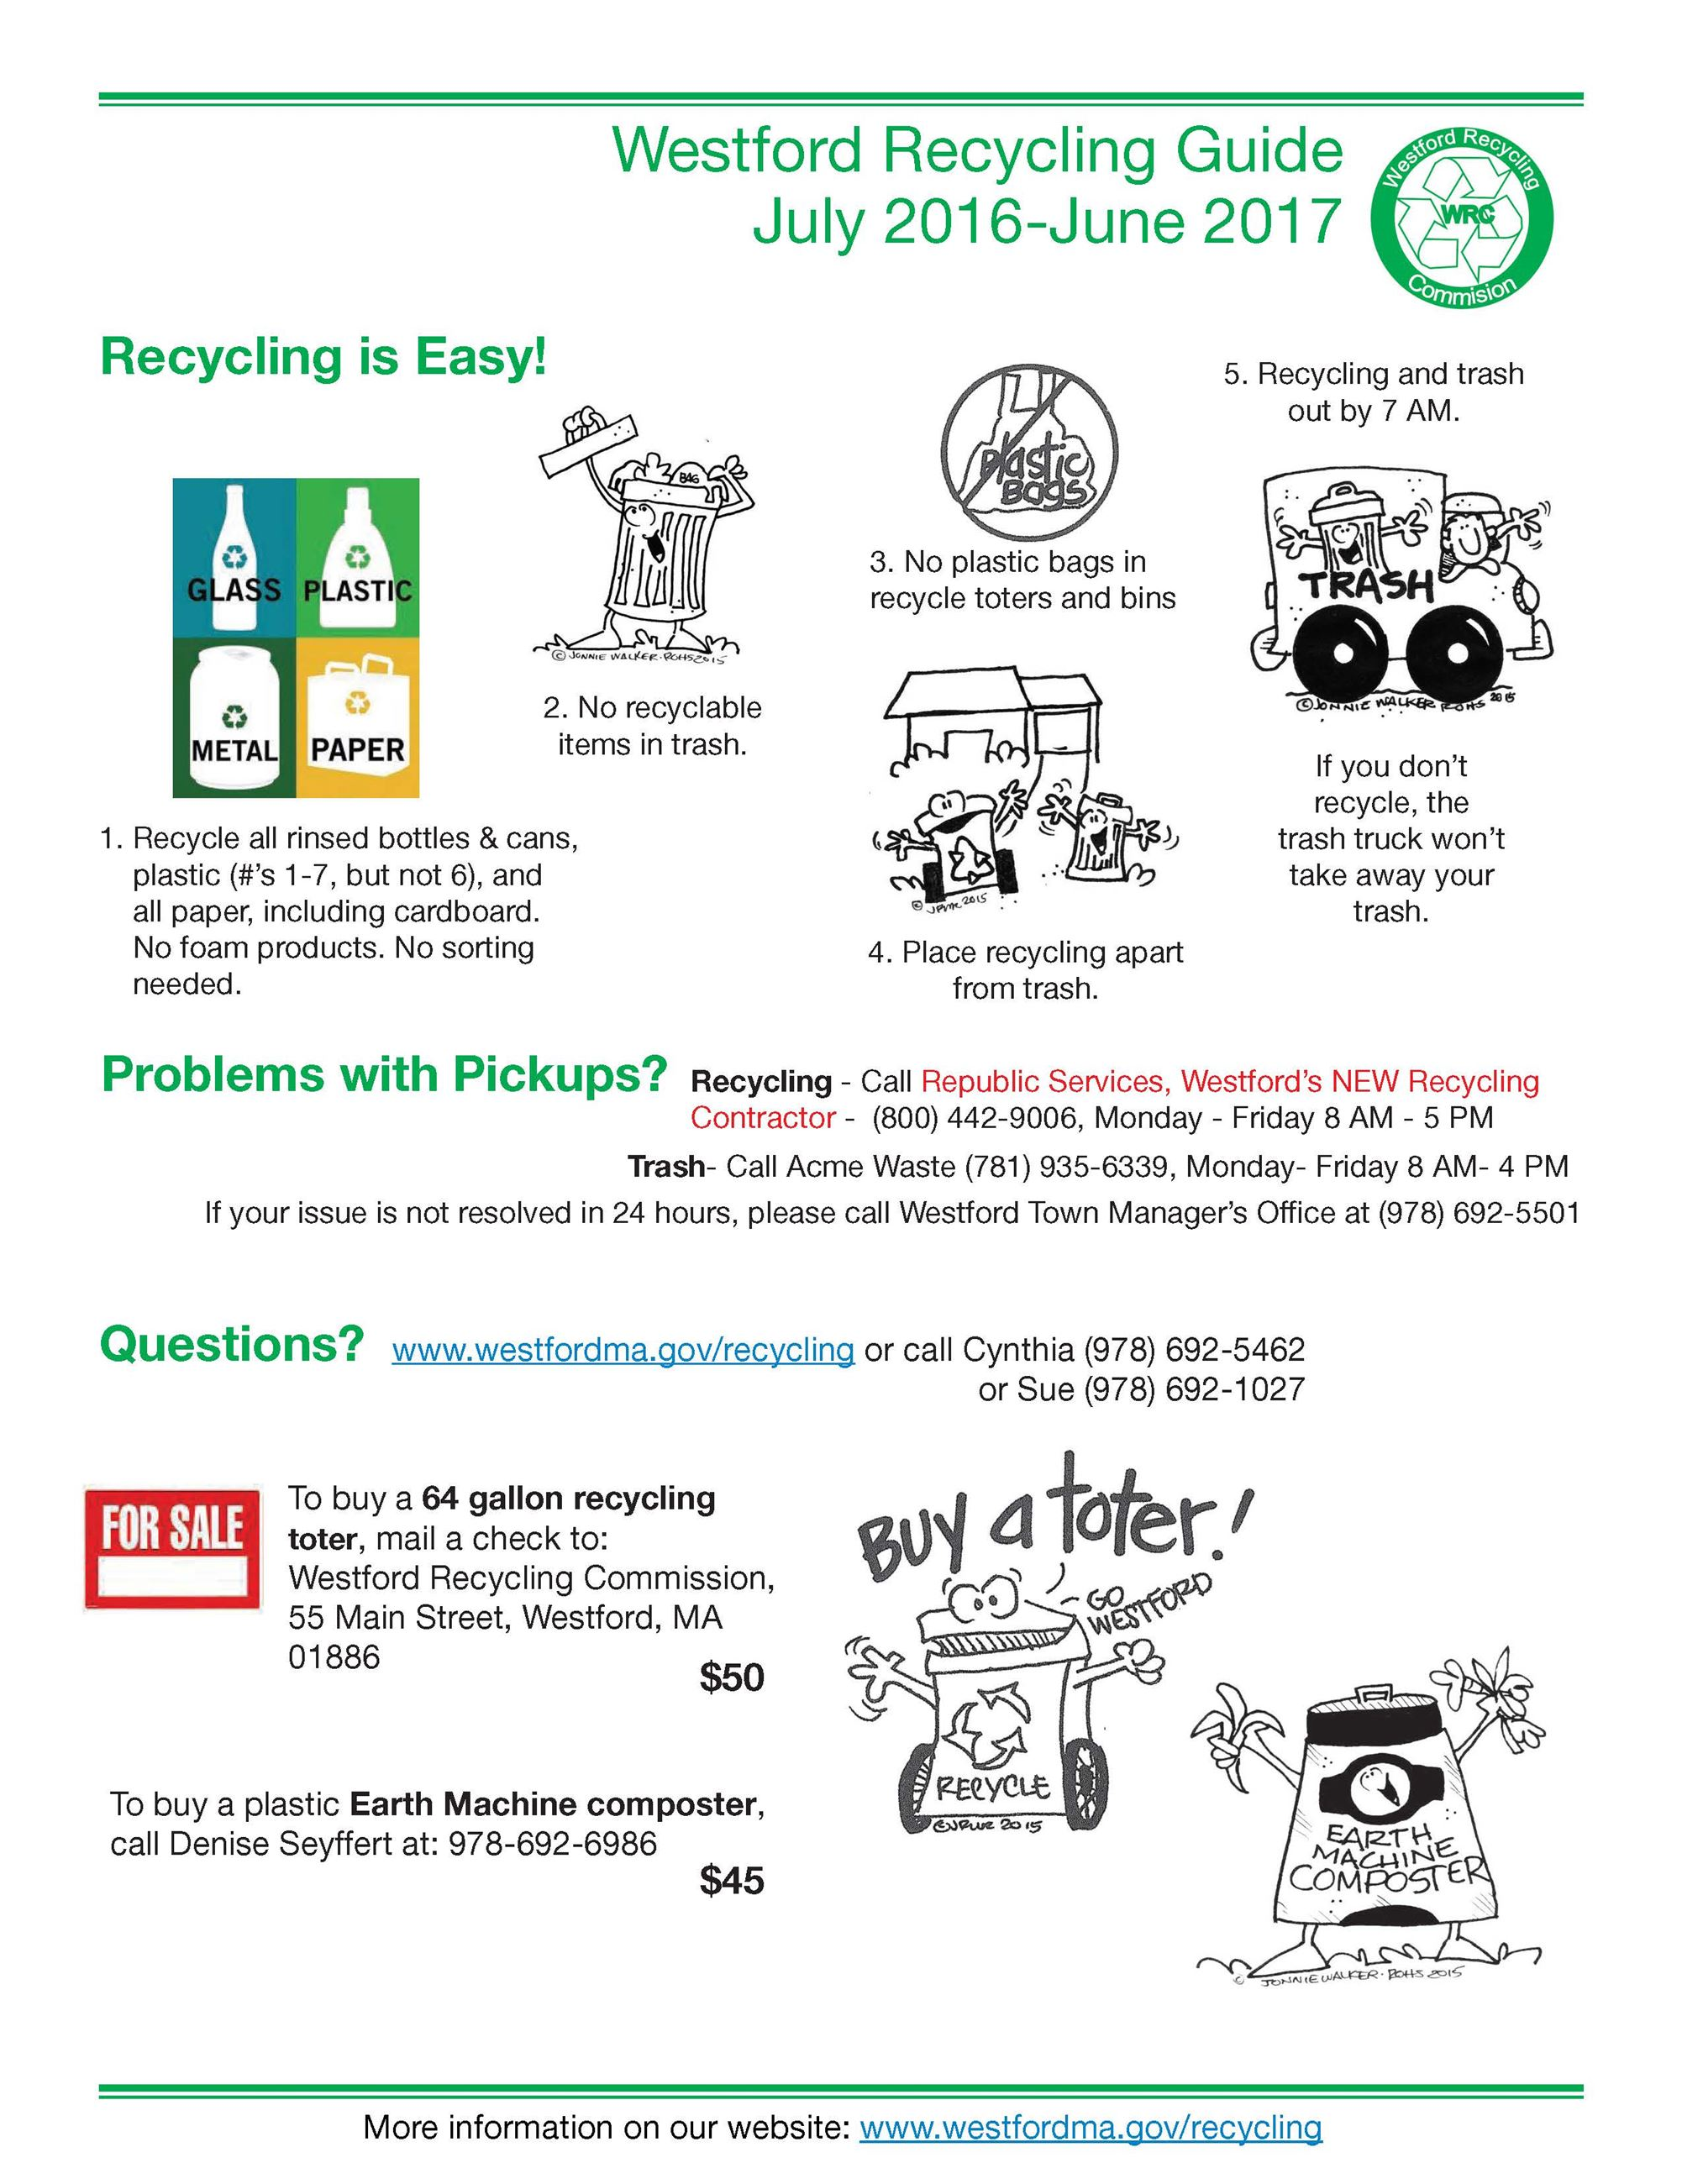 Recycling Guide (PDF) FY2017 June 2016 to July 2017 first page